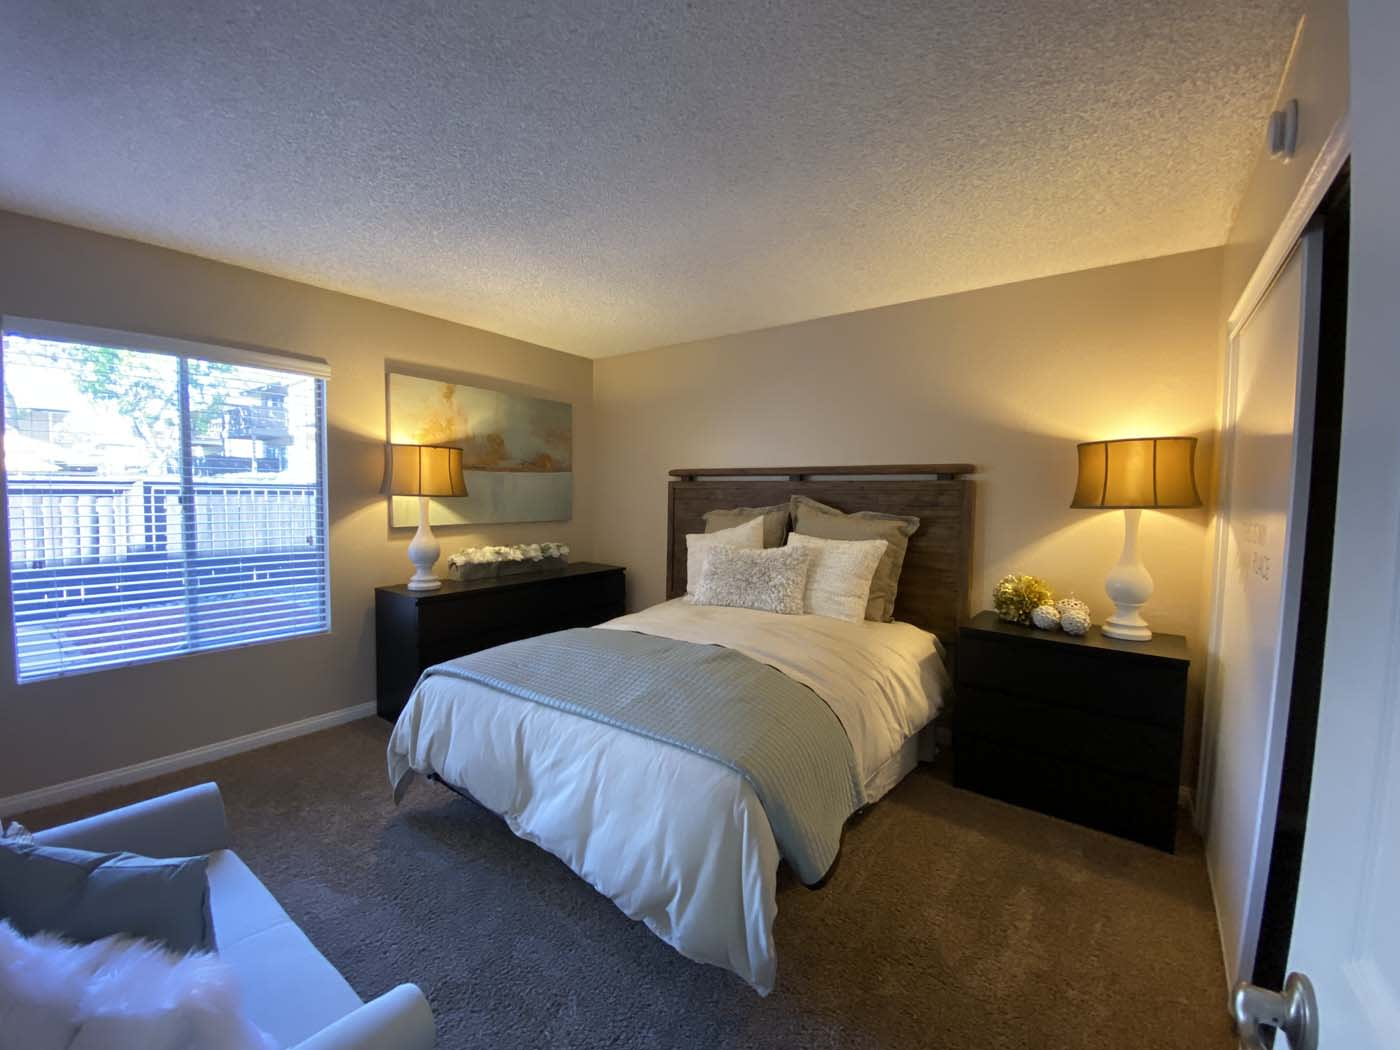 Comfortable Bedroom at Stoneridge Apartment, Upland, CA, 91786